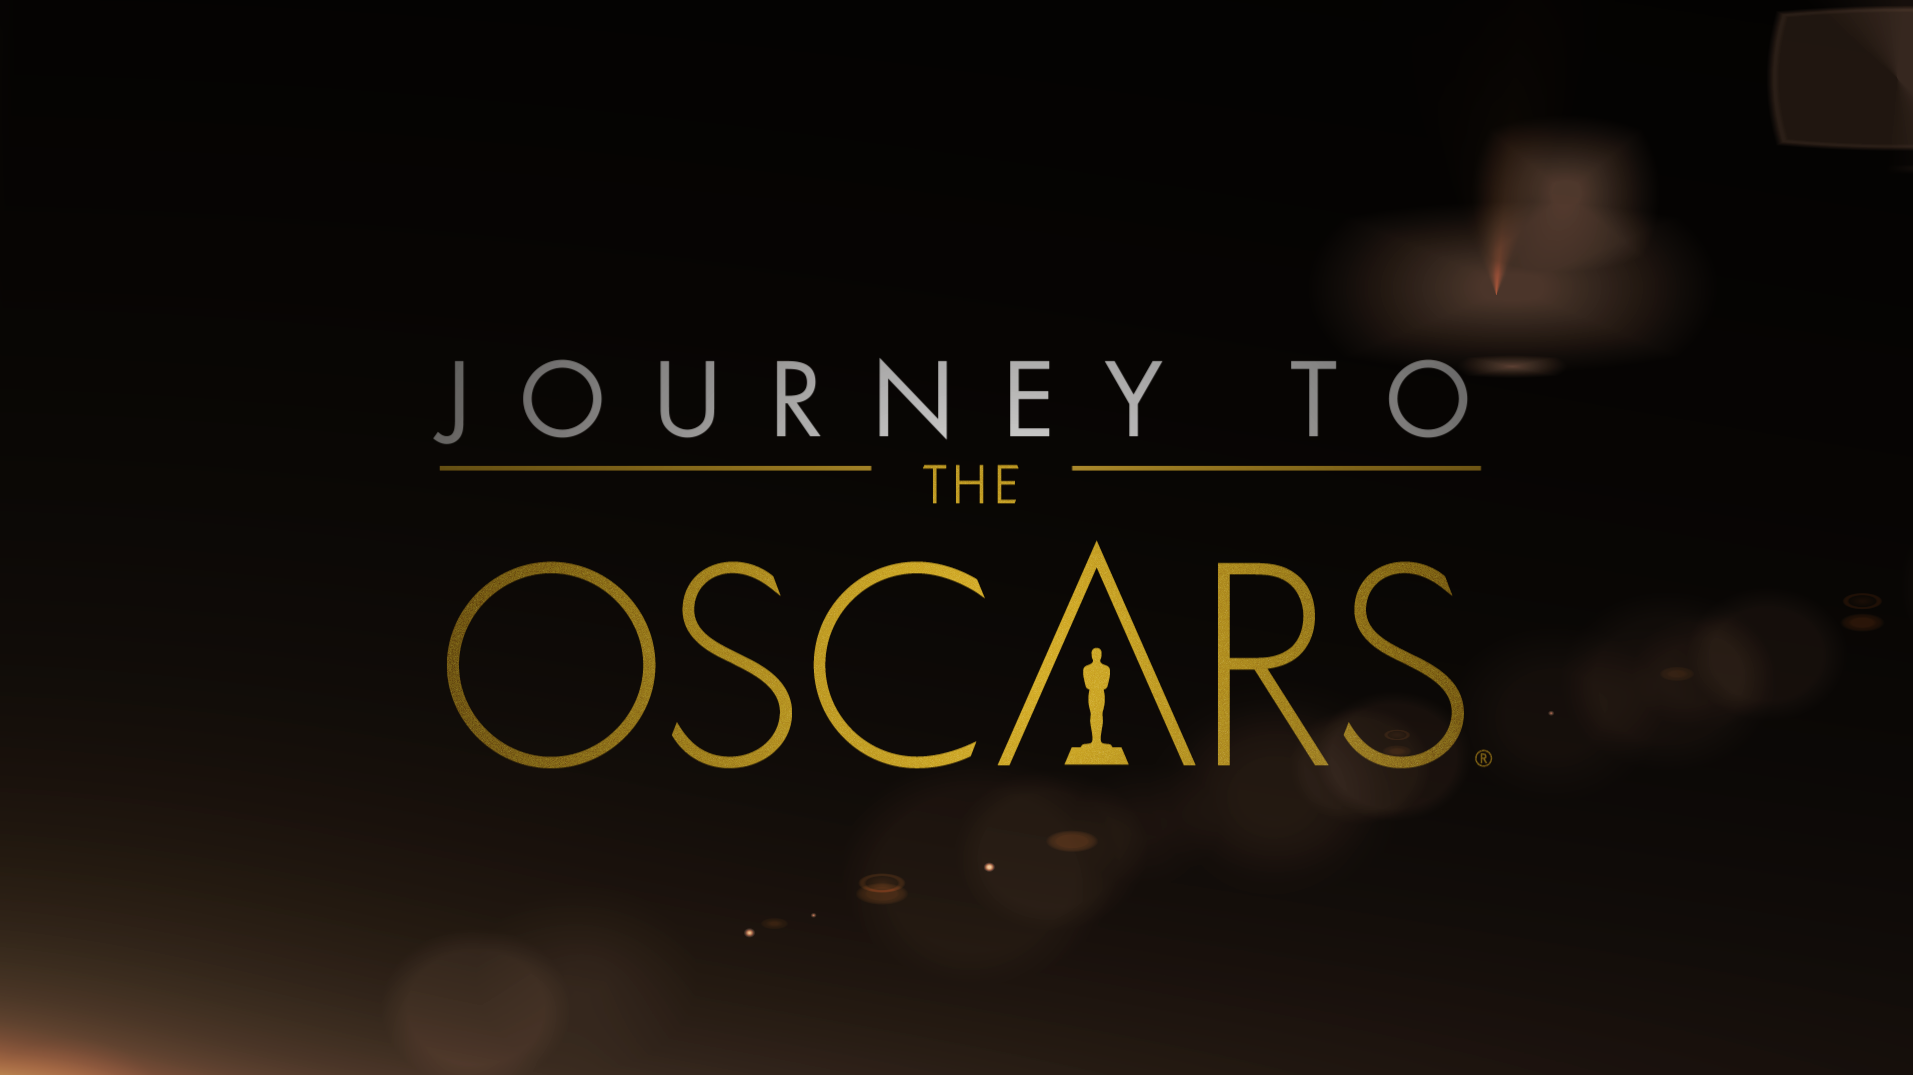 20/20: JOURNEY TO THE OSCARS